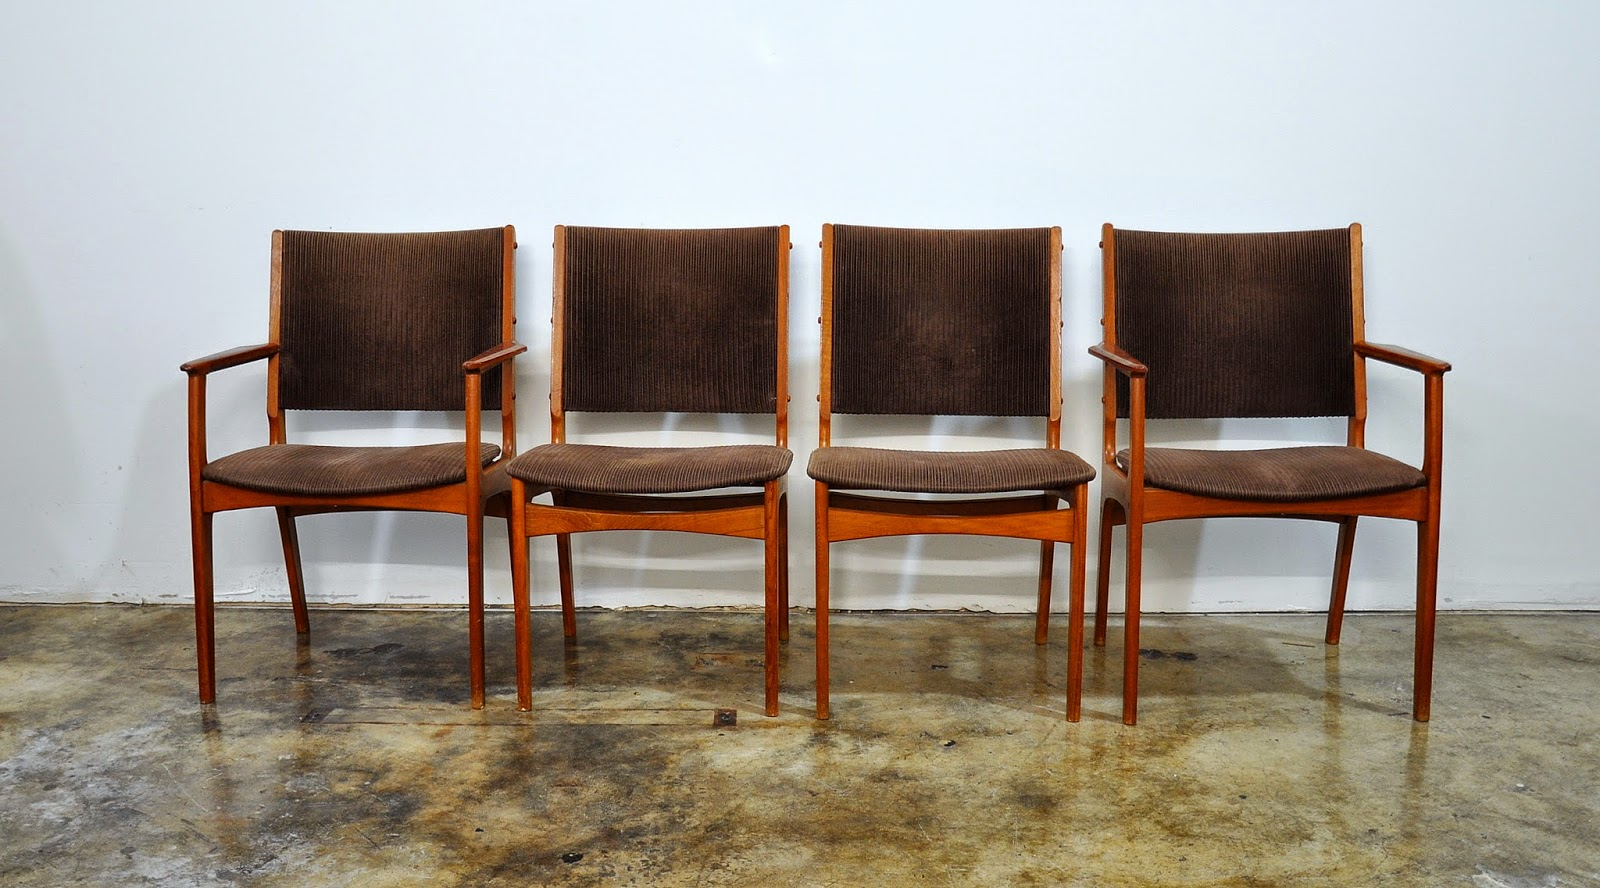 Danish Teak Dining Chairs Select Modern Set Of 4 Danish Modern Teak Dining Chairs